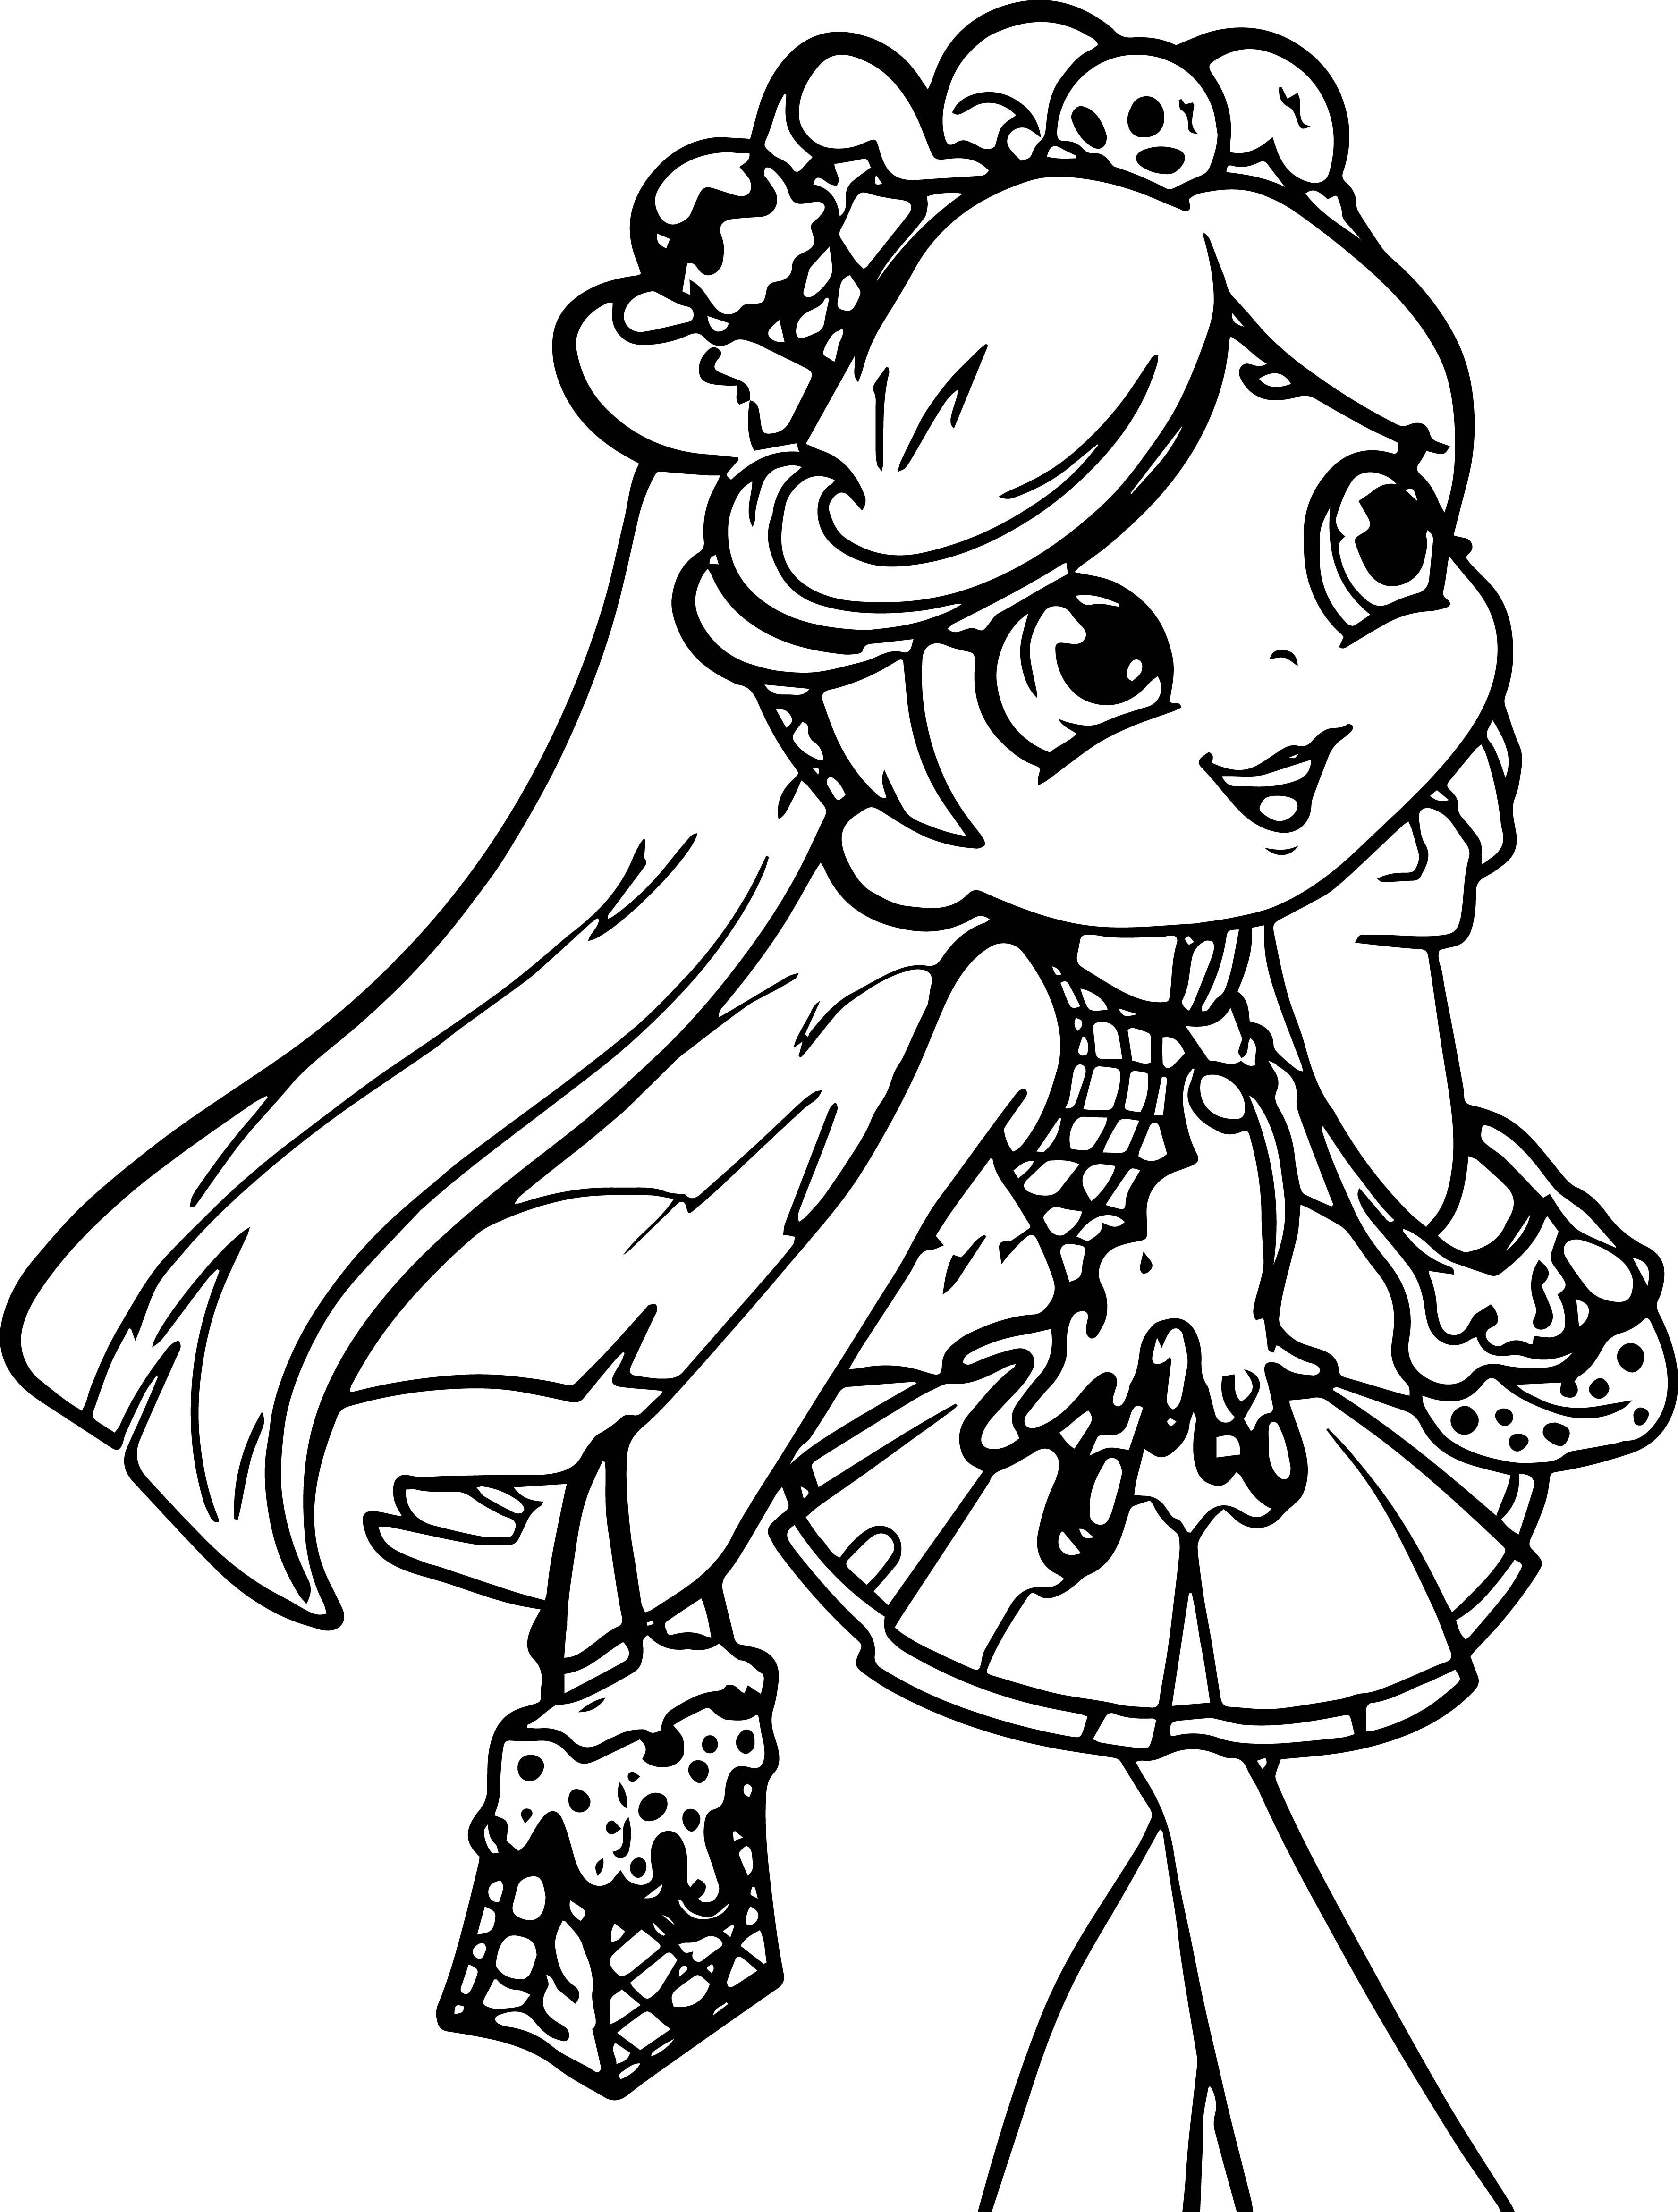 shopkin coloring pictures shopkins coloring pages season 7 coloring pages for kids pictures shopkin coloring